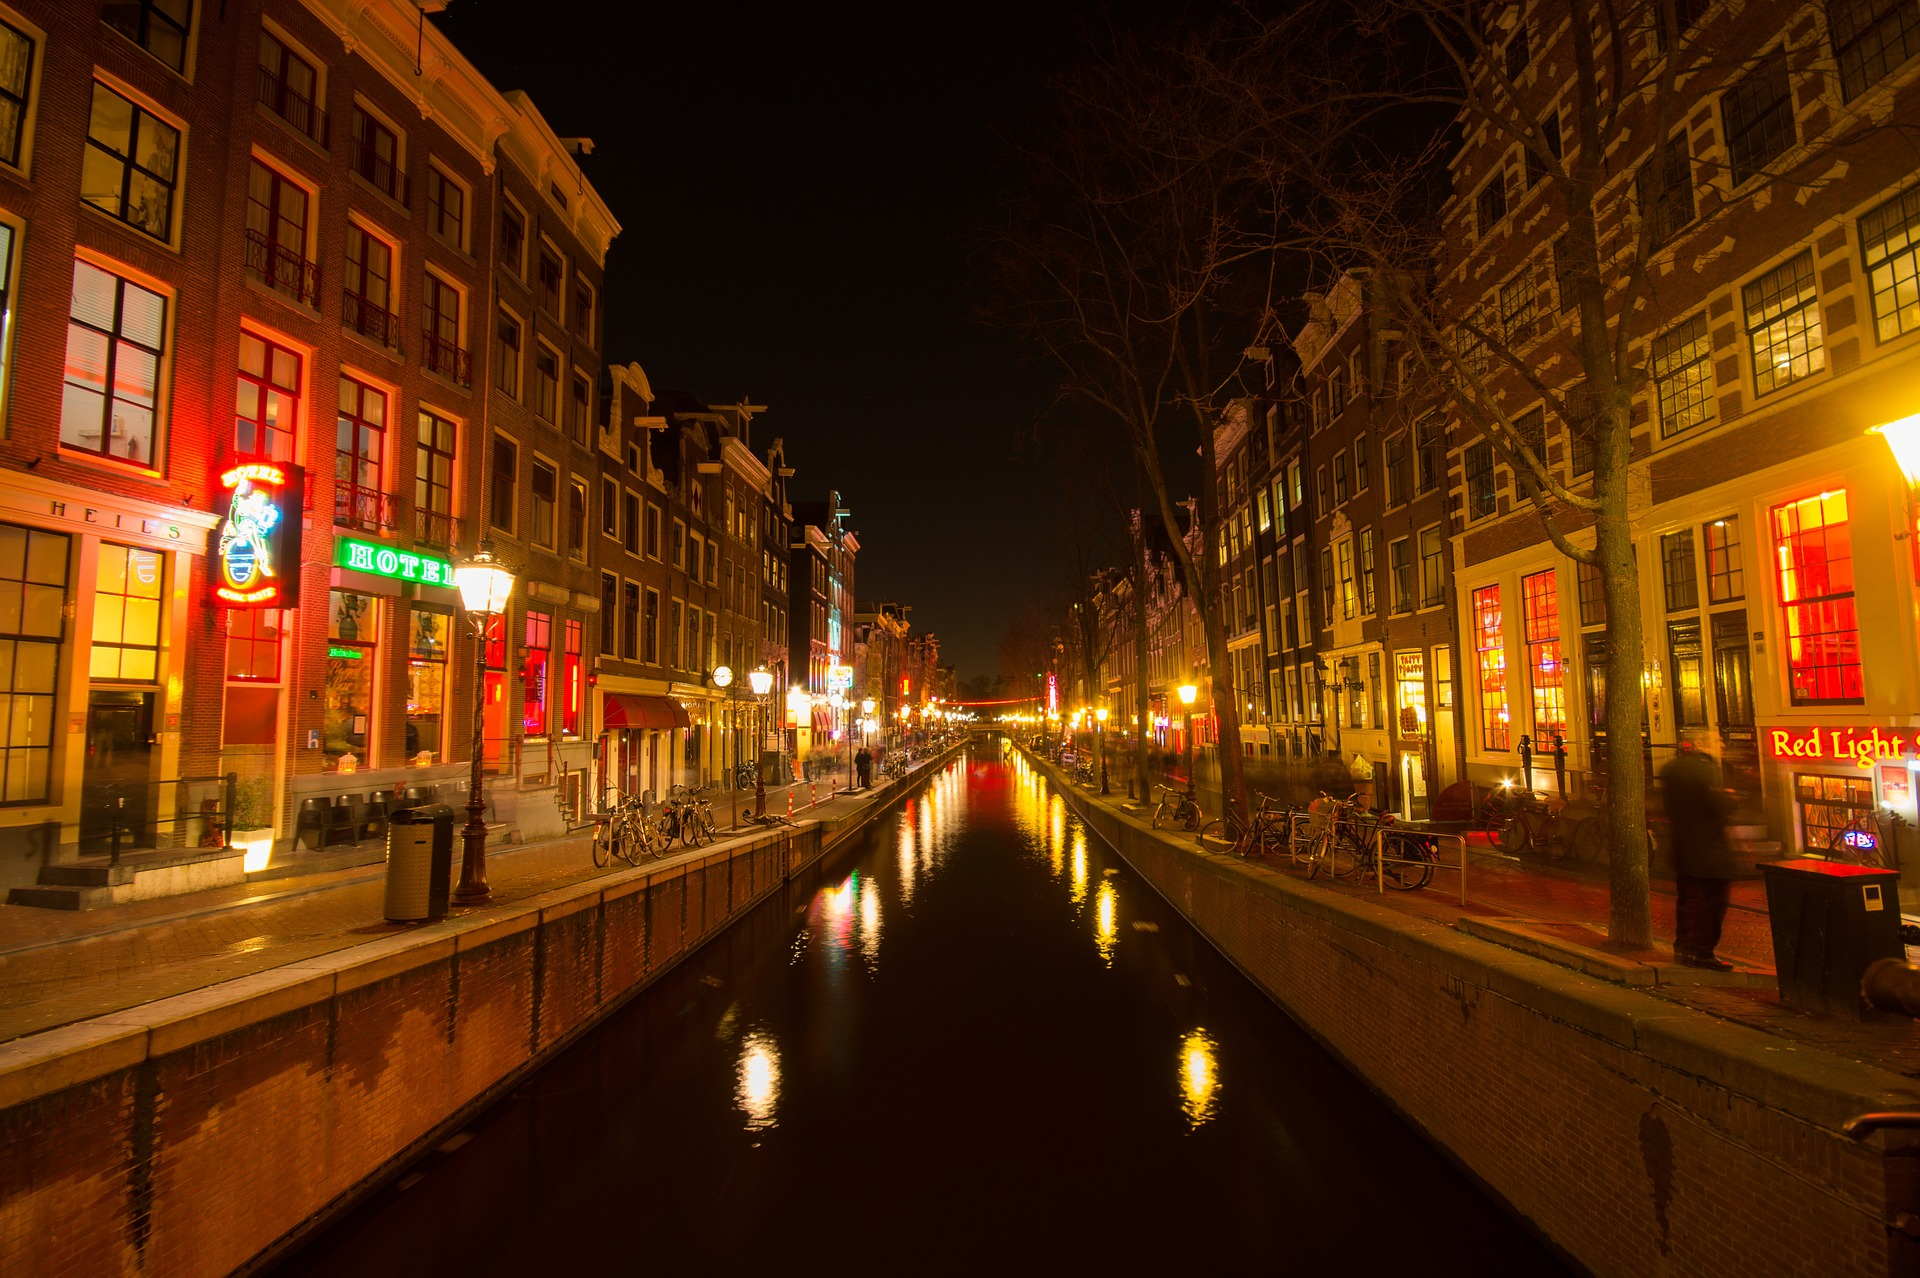 City at Night, Architecture, Building, Canal, City, HQ Photo